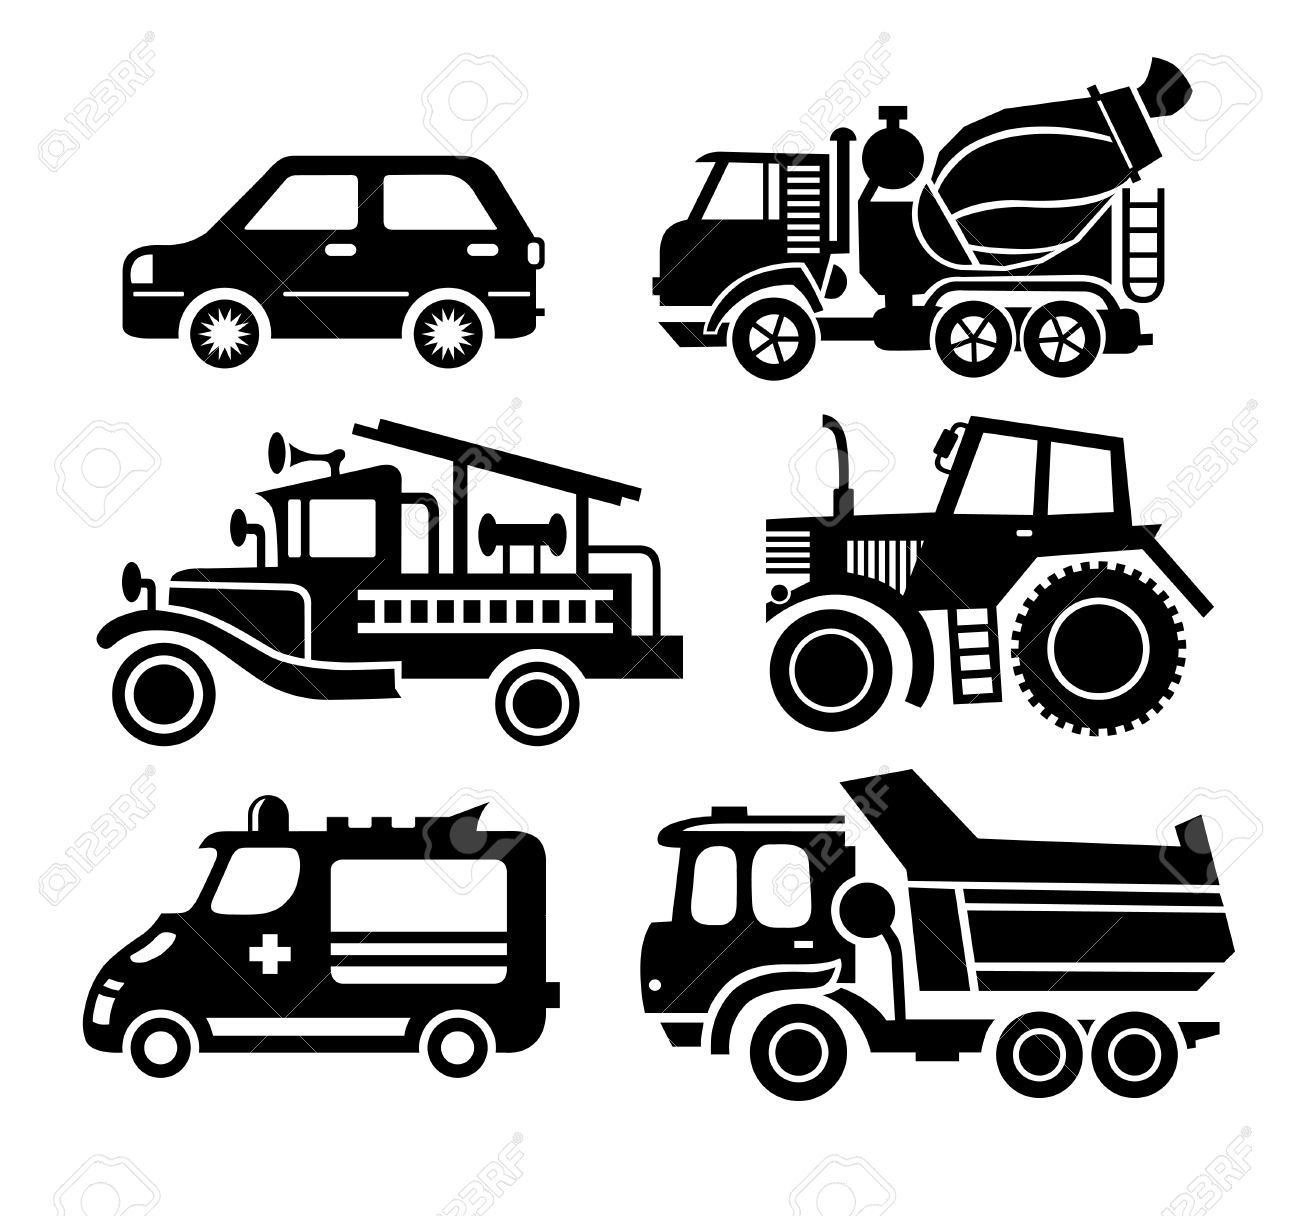 construction vehicles clipart black and white.